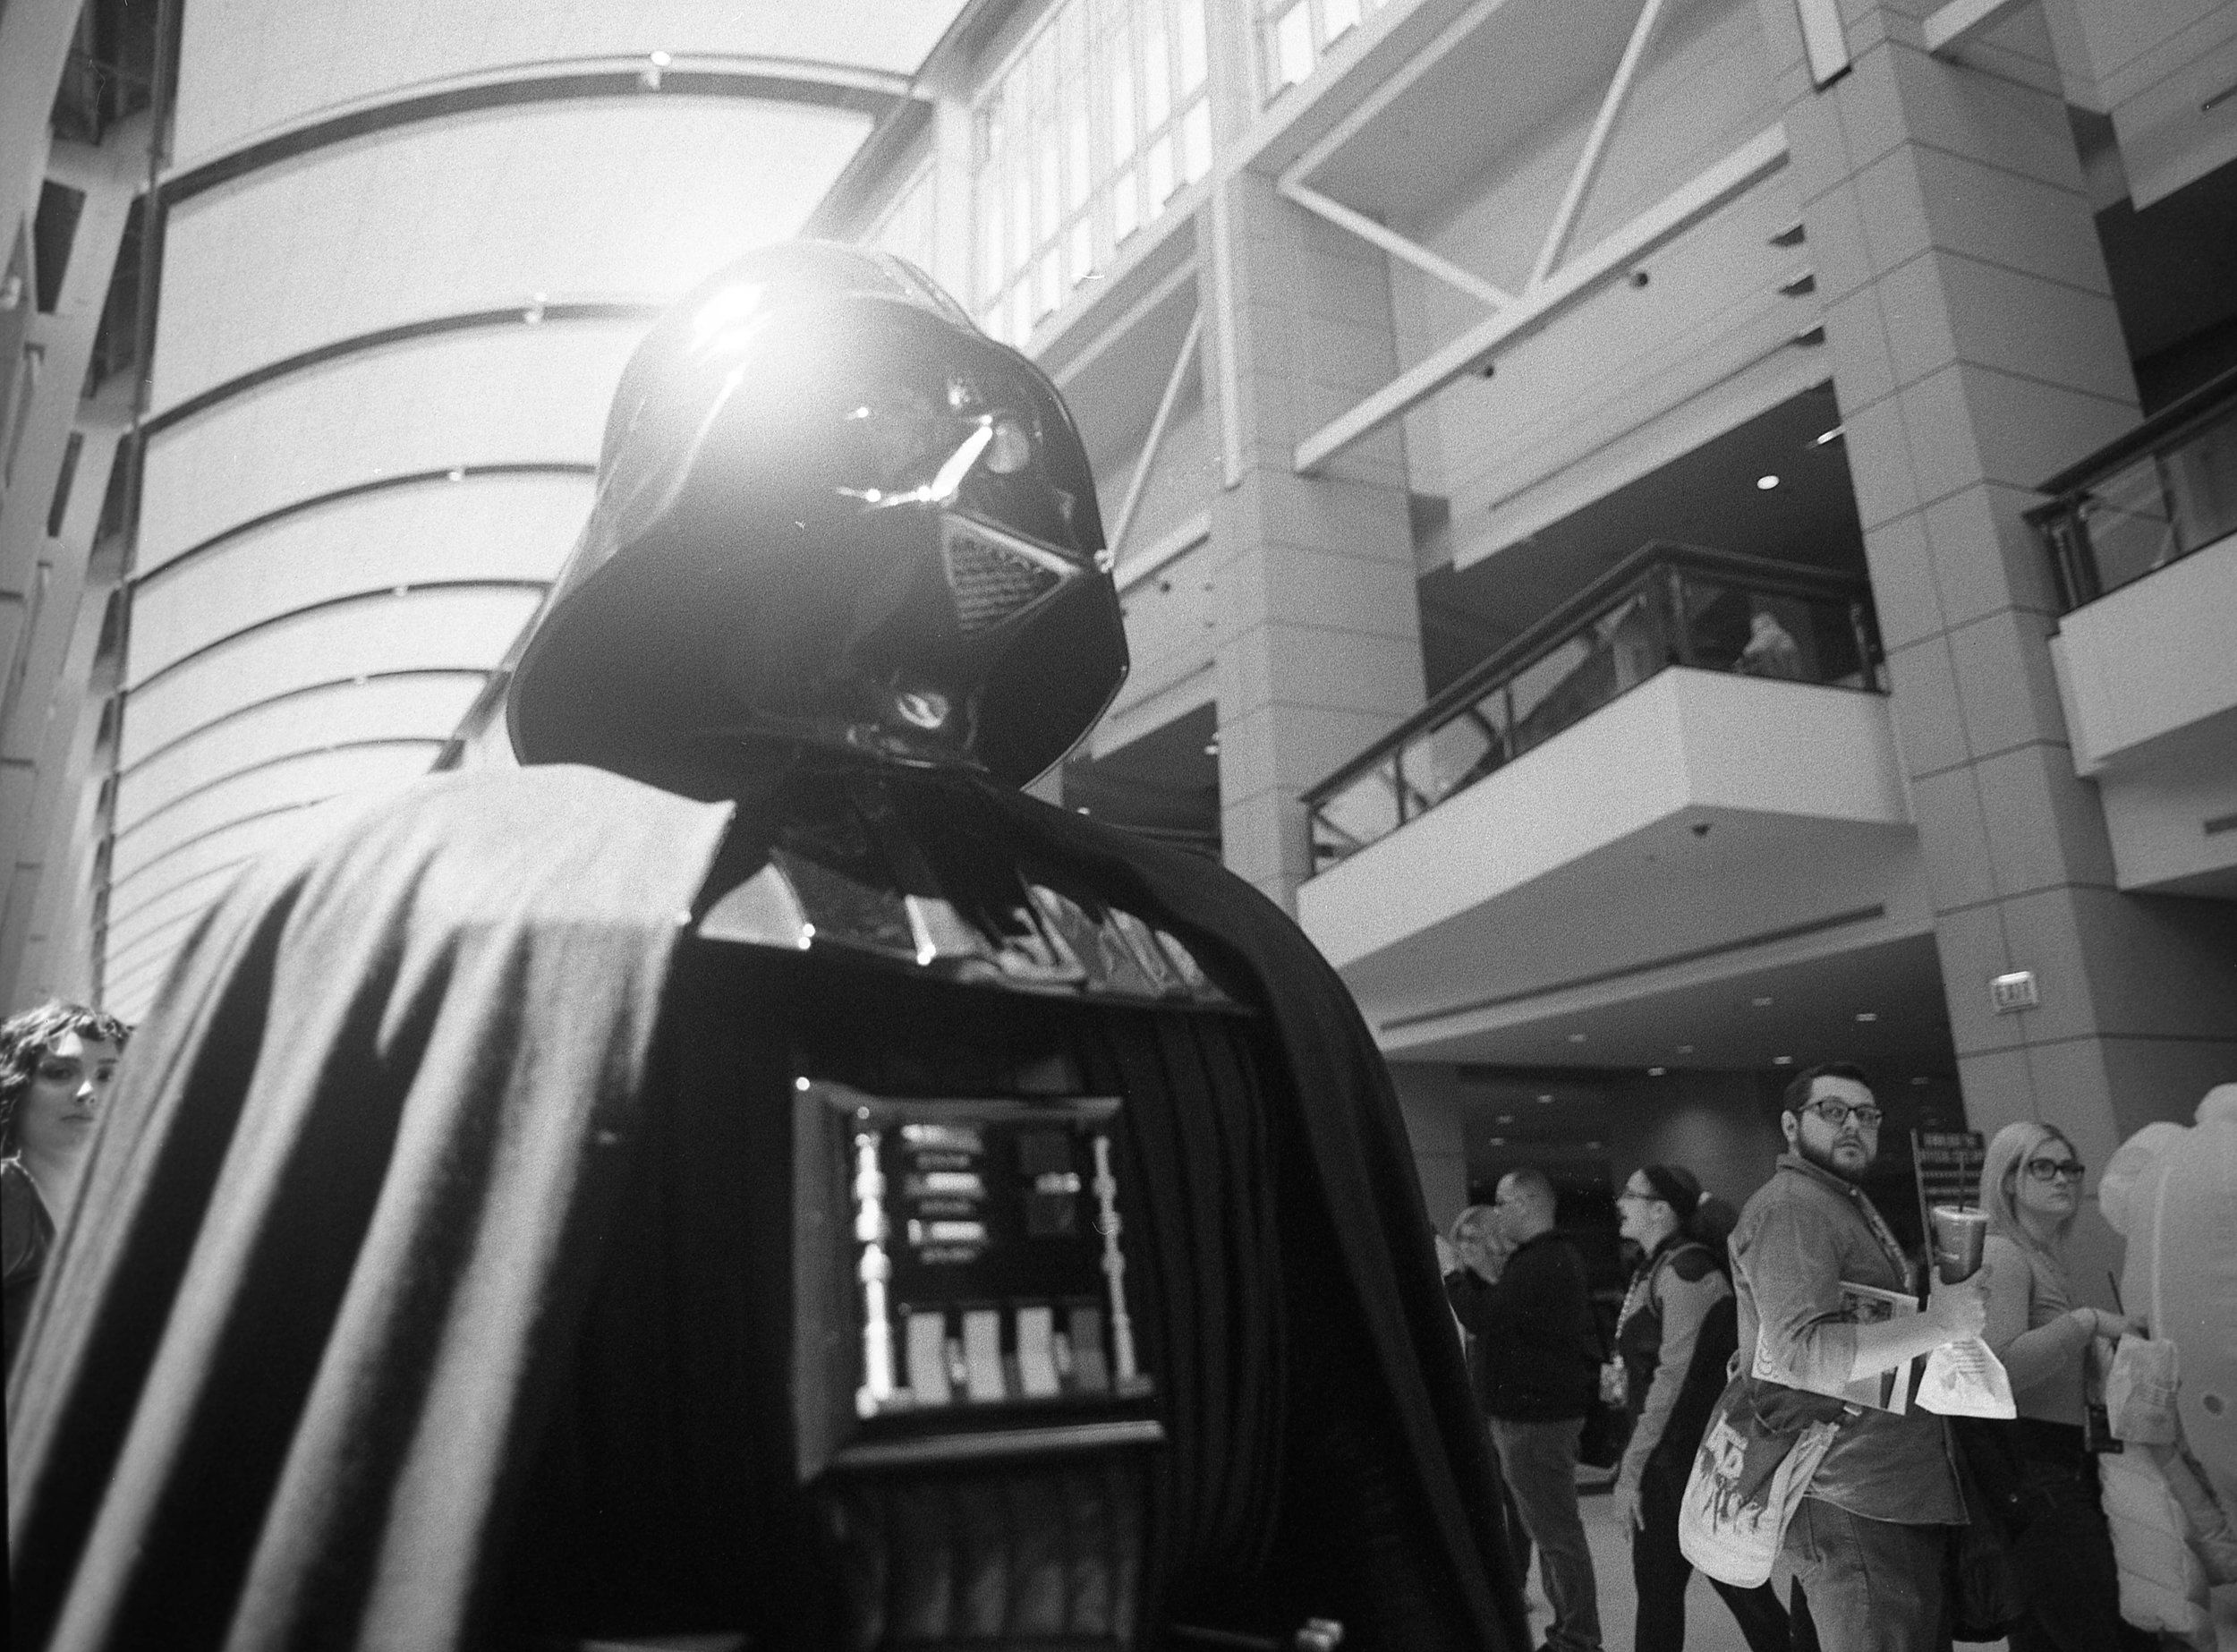 Darth Vader in the entrance hallway. There's amazing lighting here that it seems like photogs try to work against when shooting there.